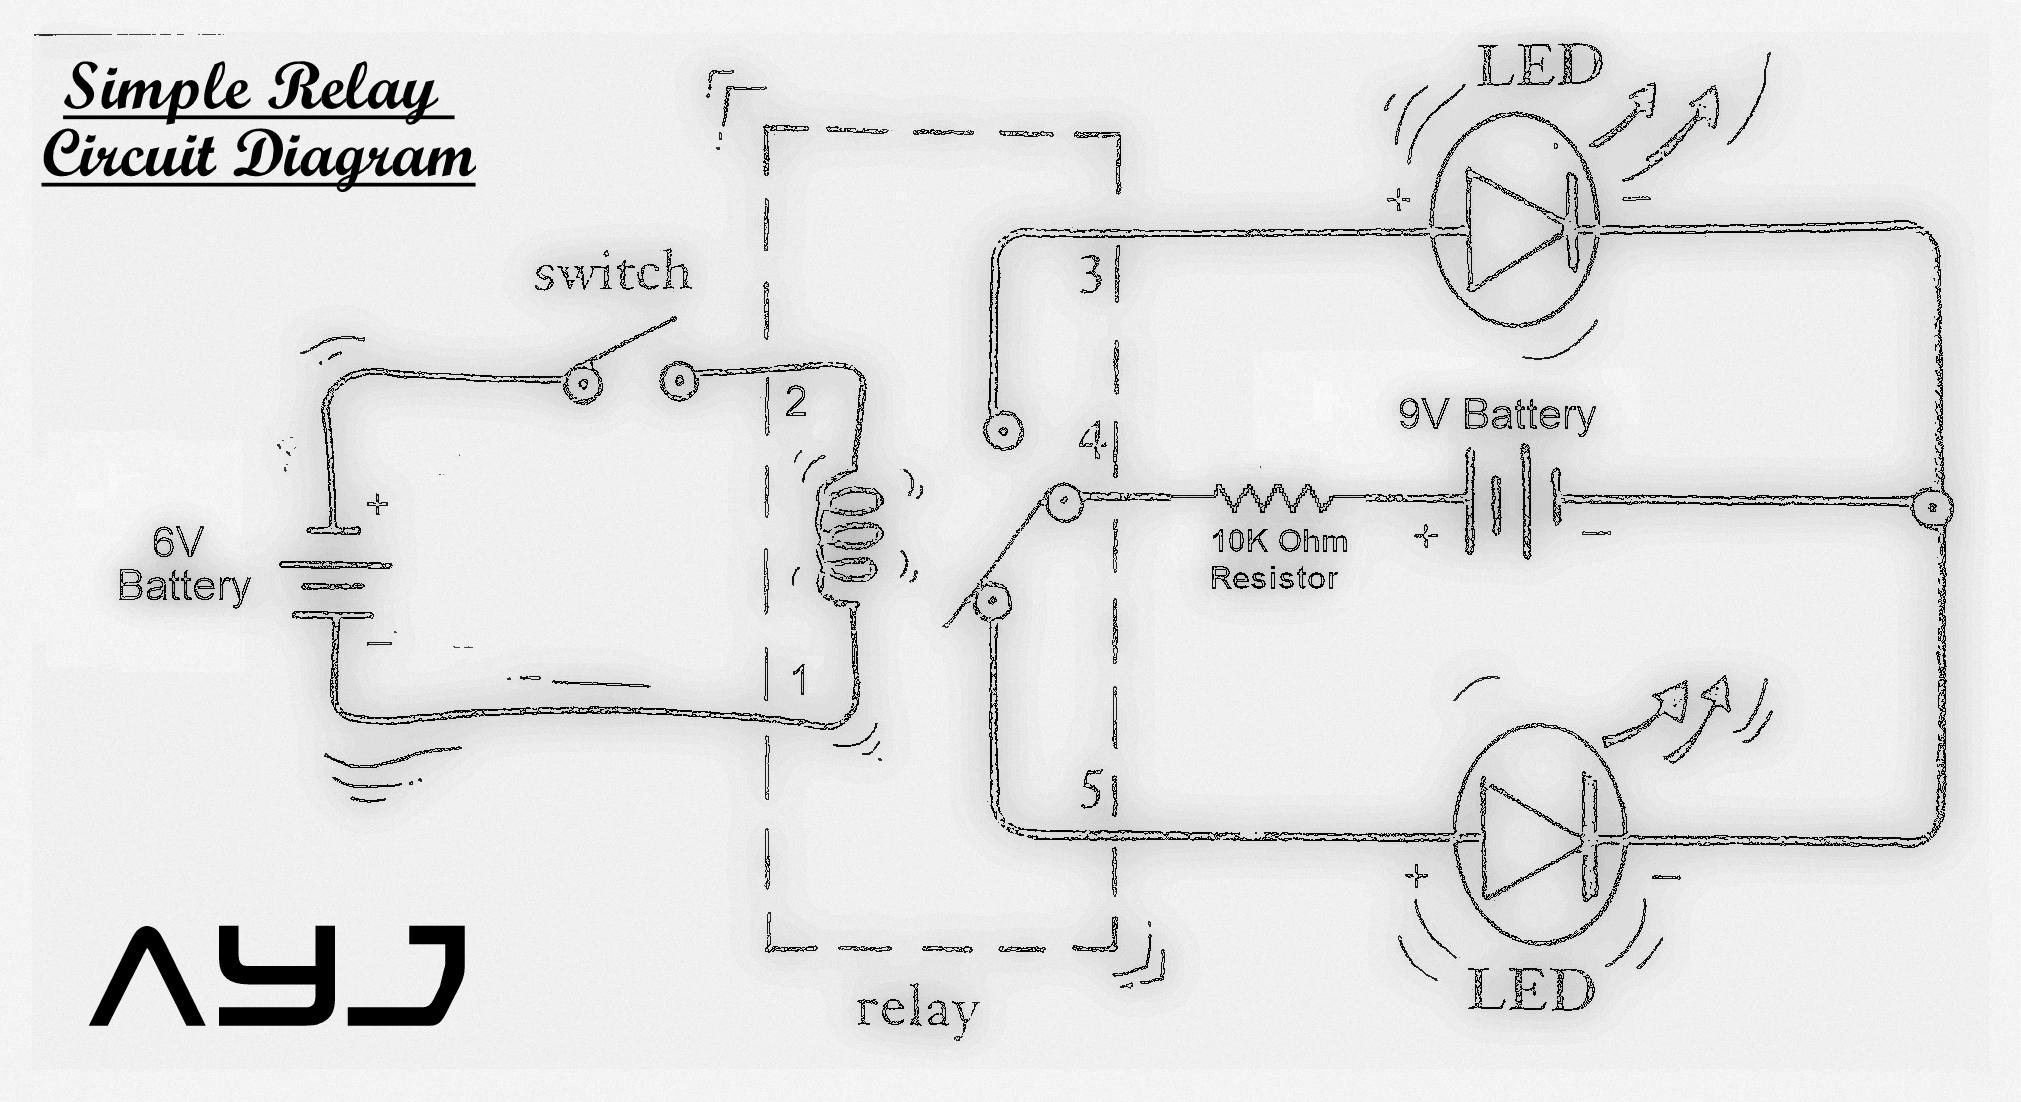 simple relay stepup circuits